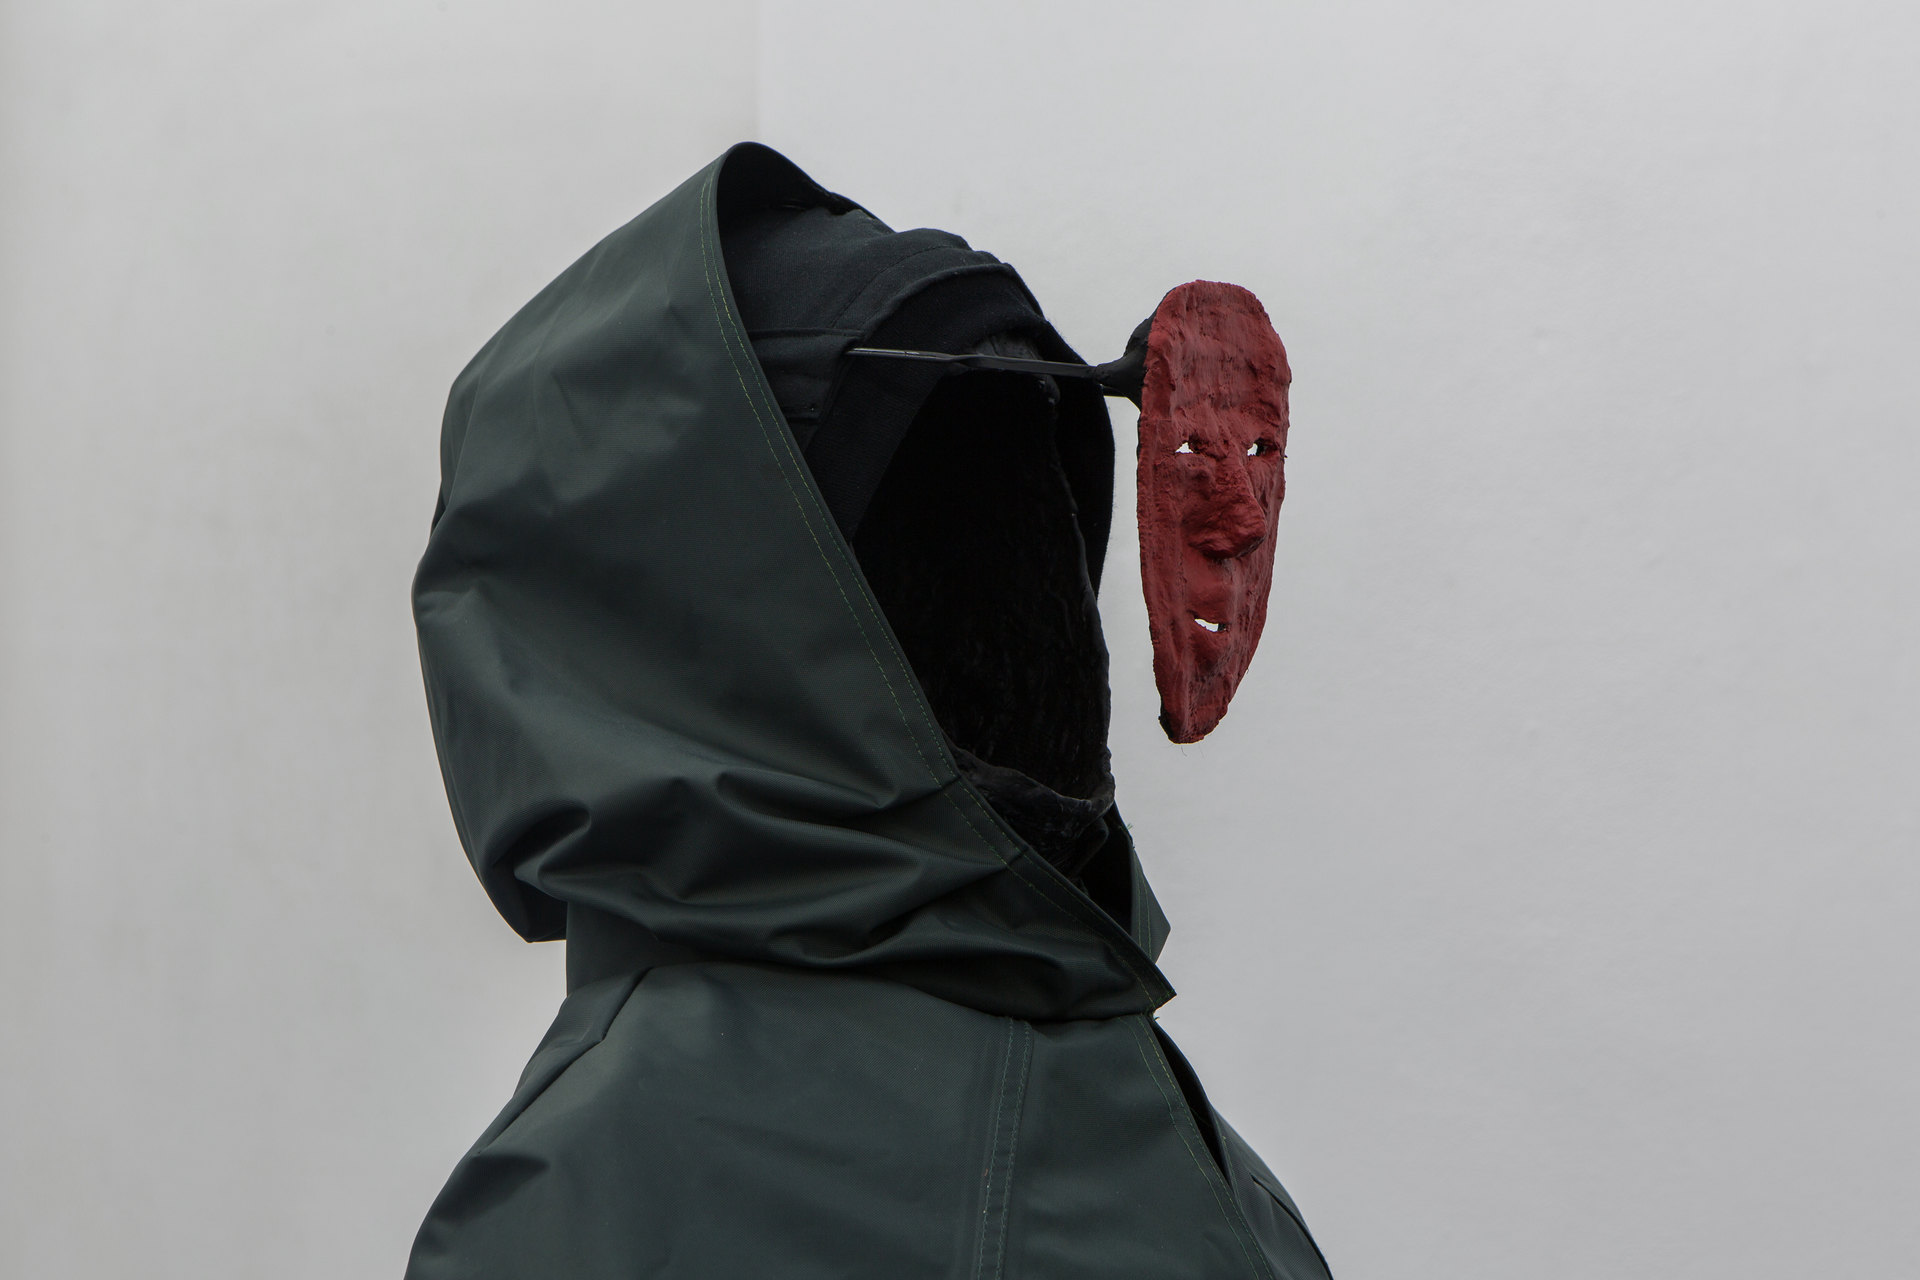 Angharad Williams and Mathis Gasser, 'Joker' (detail), 2018, Hergest:Nant, Cell Project Space